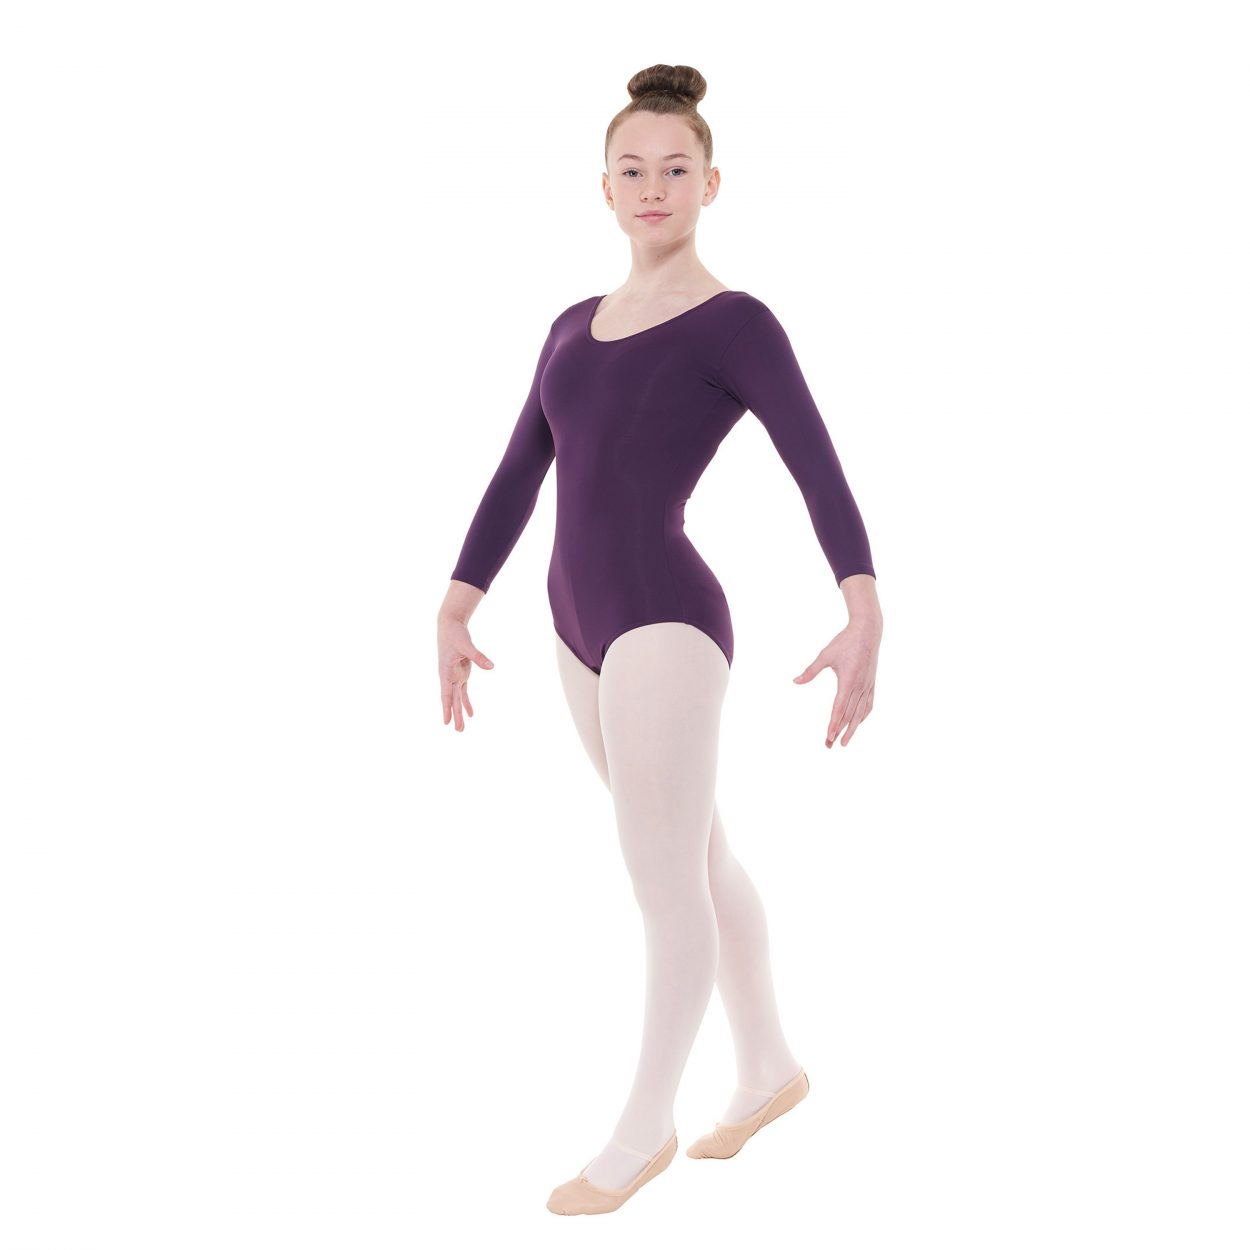 Meryl-34-Length-Sleeved-Leotard-With-A-Plain-Front-by-Tappers-and-Pointers